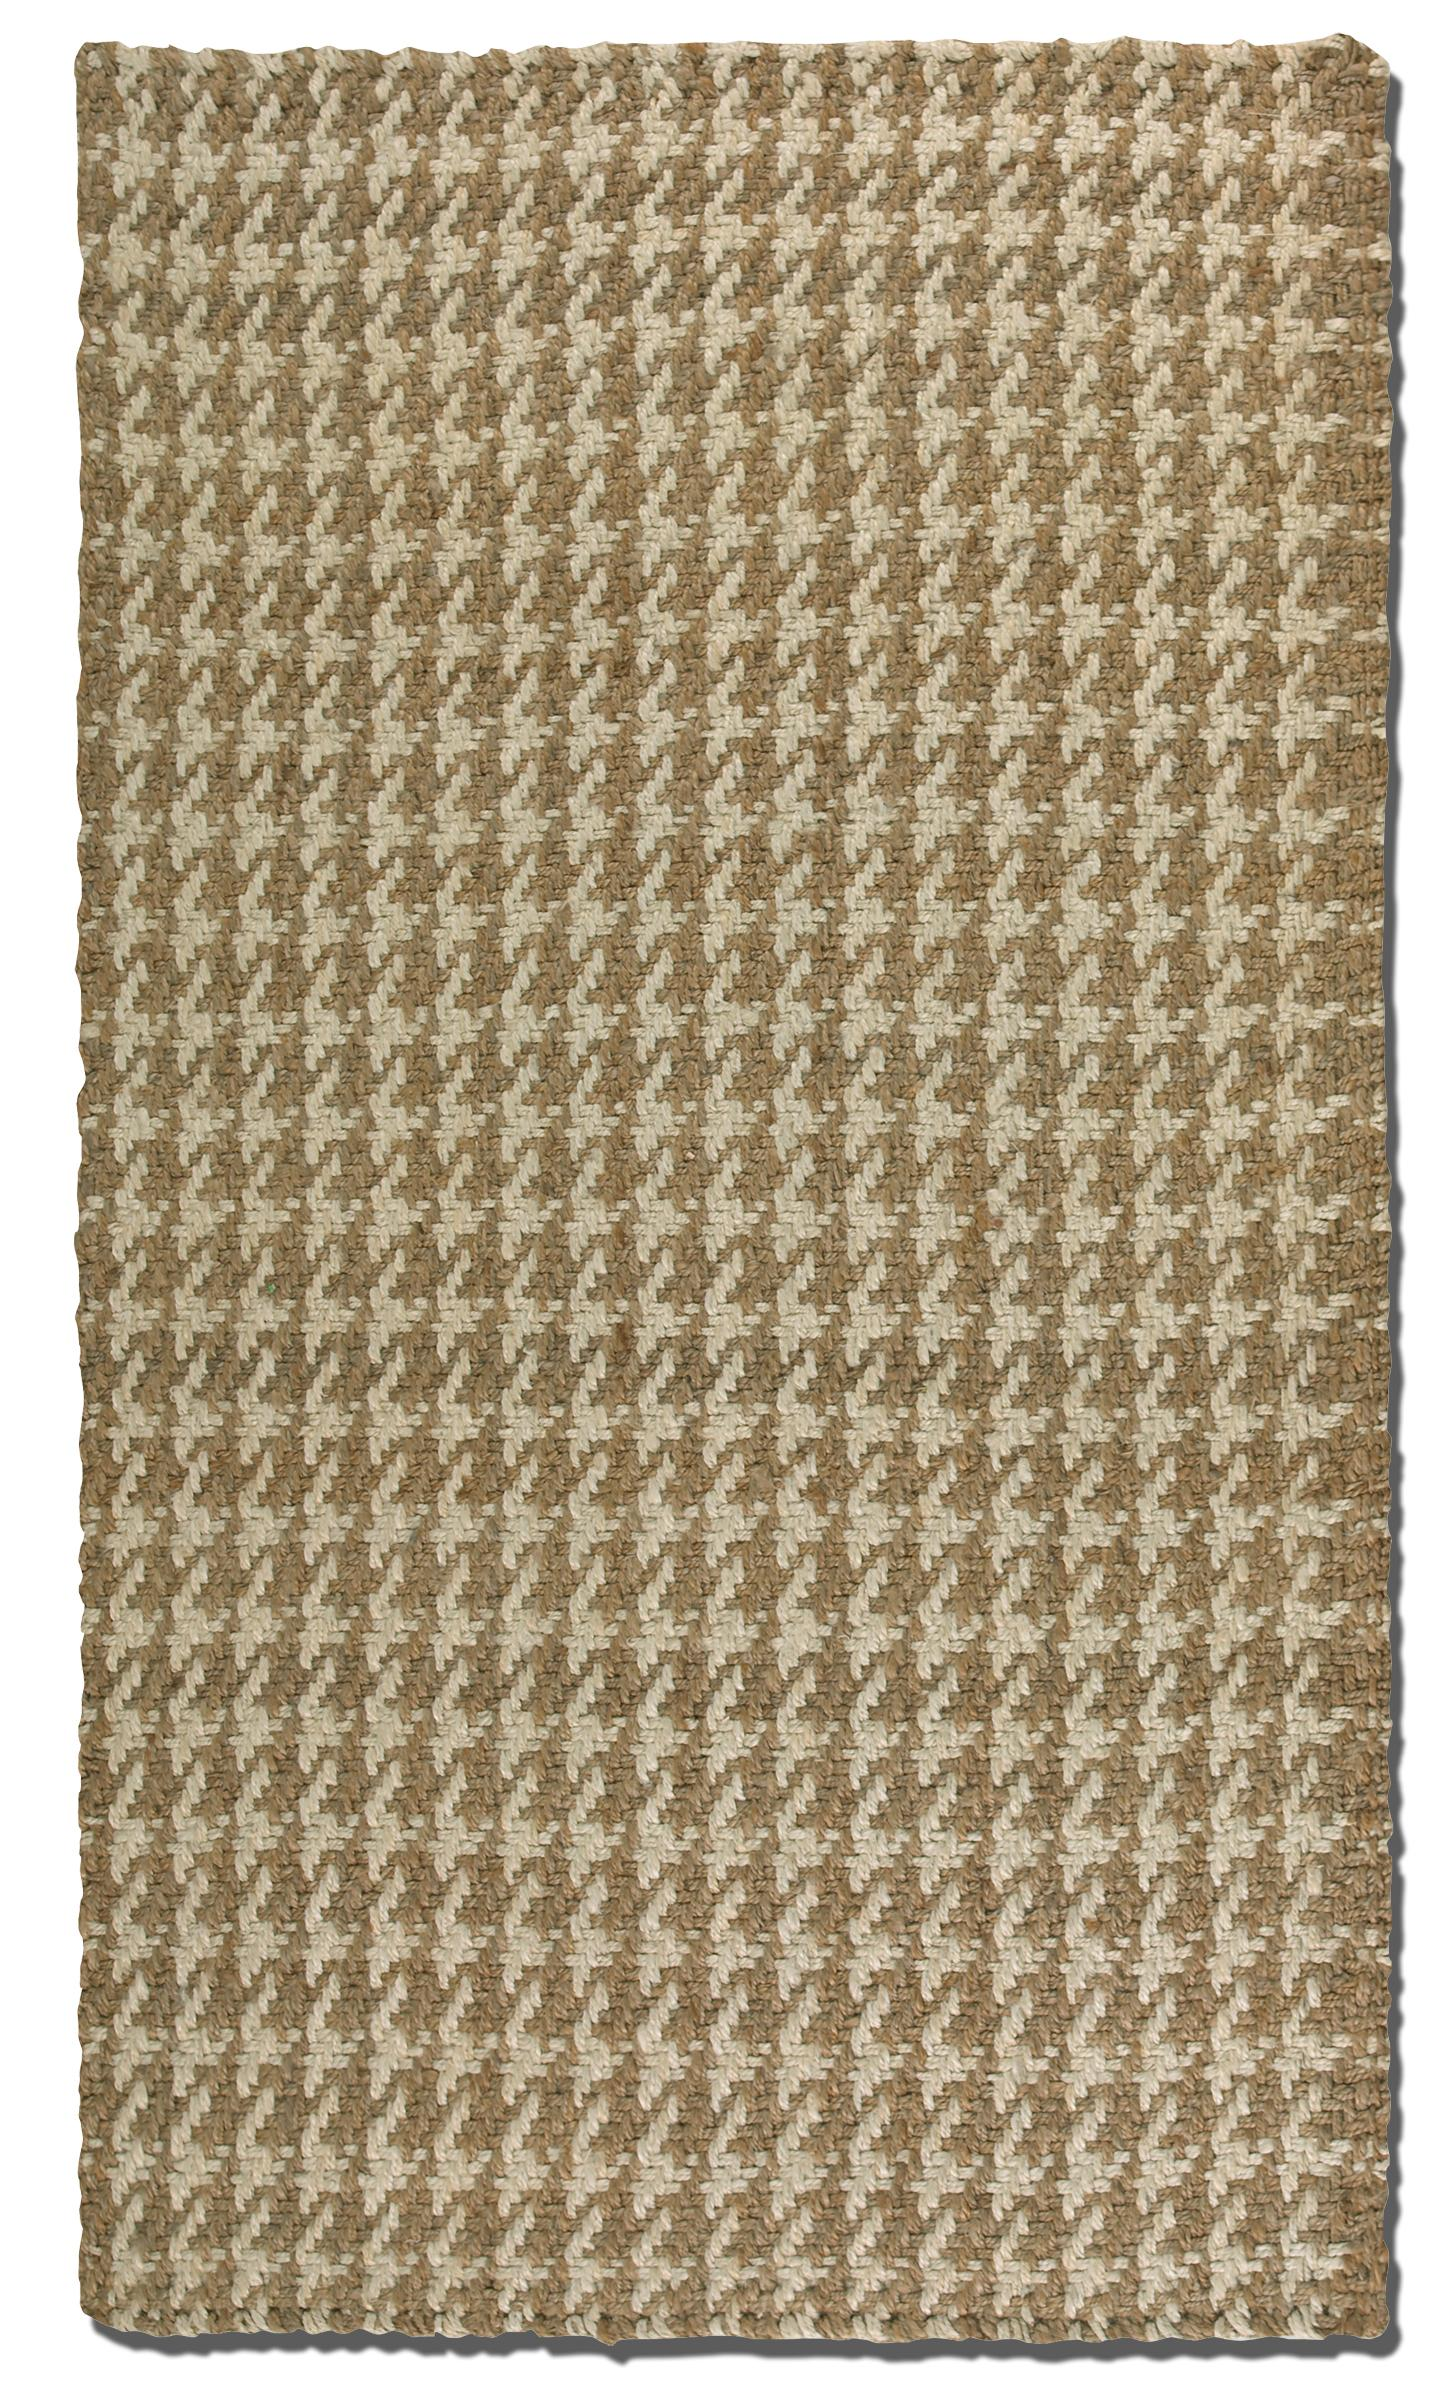 Uttermost Rugs Bengal 5 X 8  - Item Number: 71035-5